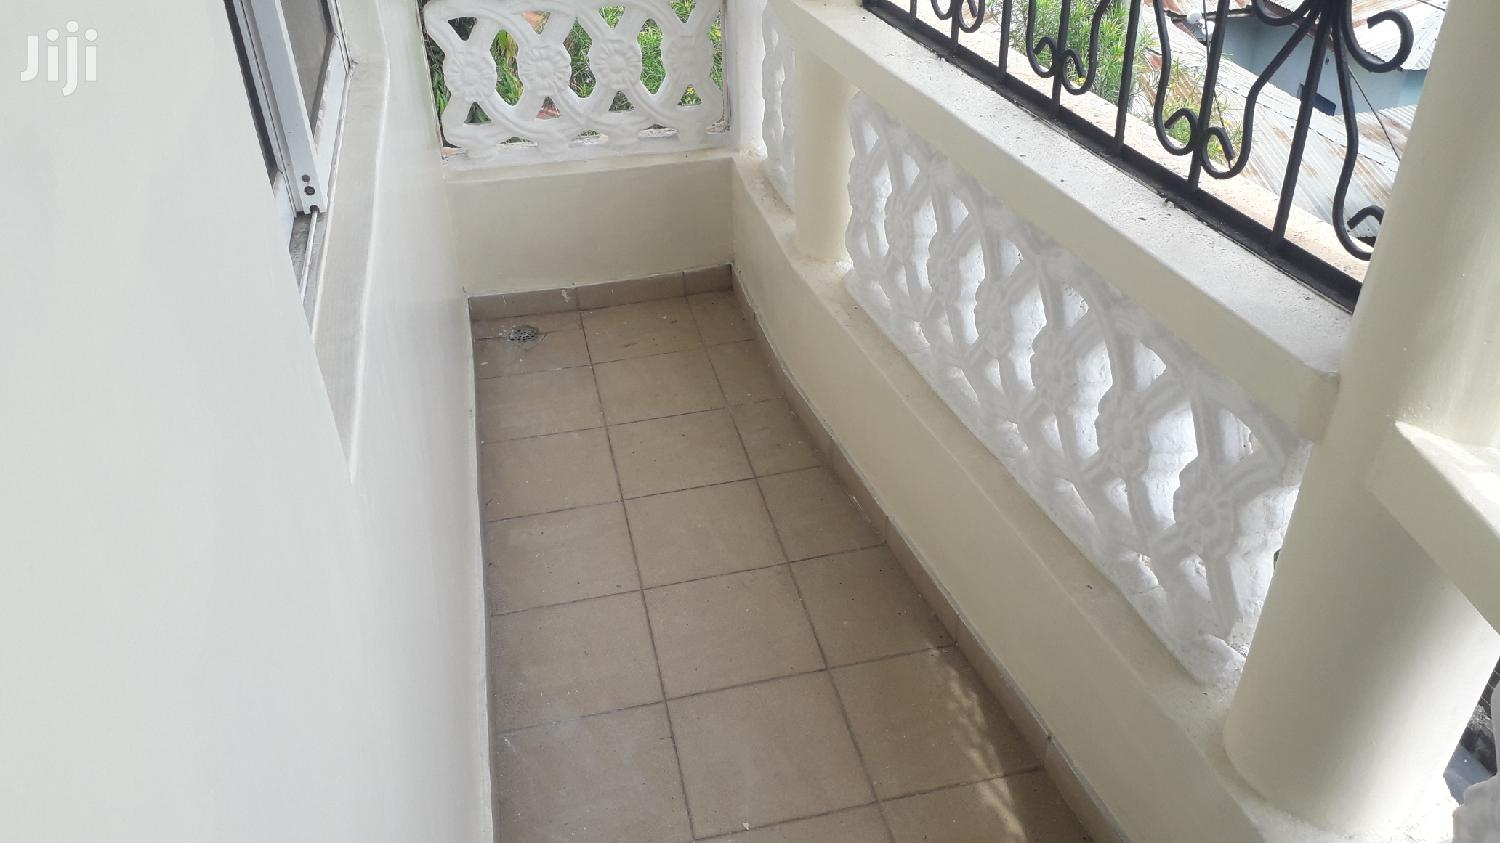 Nyali 2 Bedroom Apartment With Master En Suite Bedroom   Houses & Apartments For Rent for sale in Nyali, Mombasa, Kenya